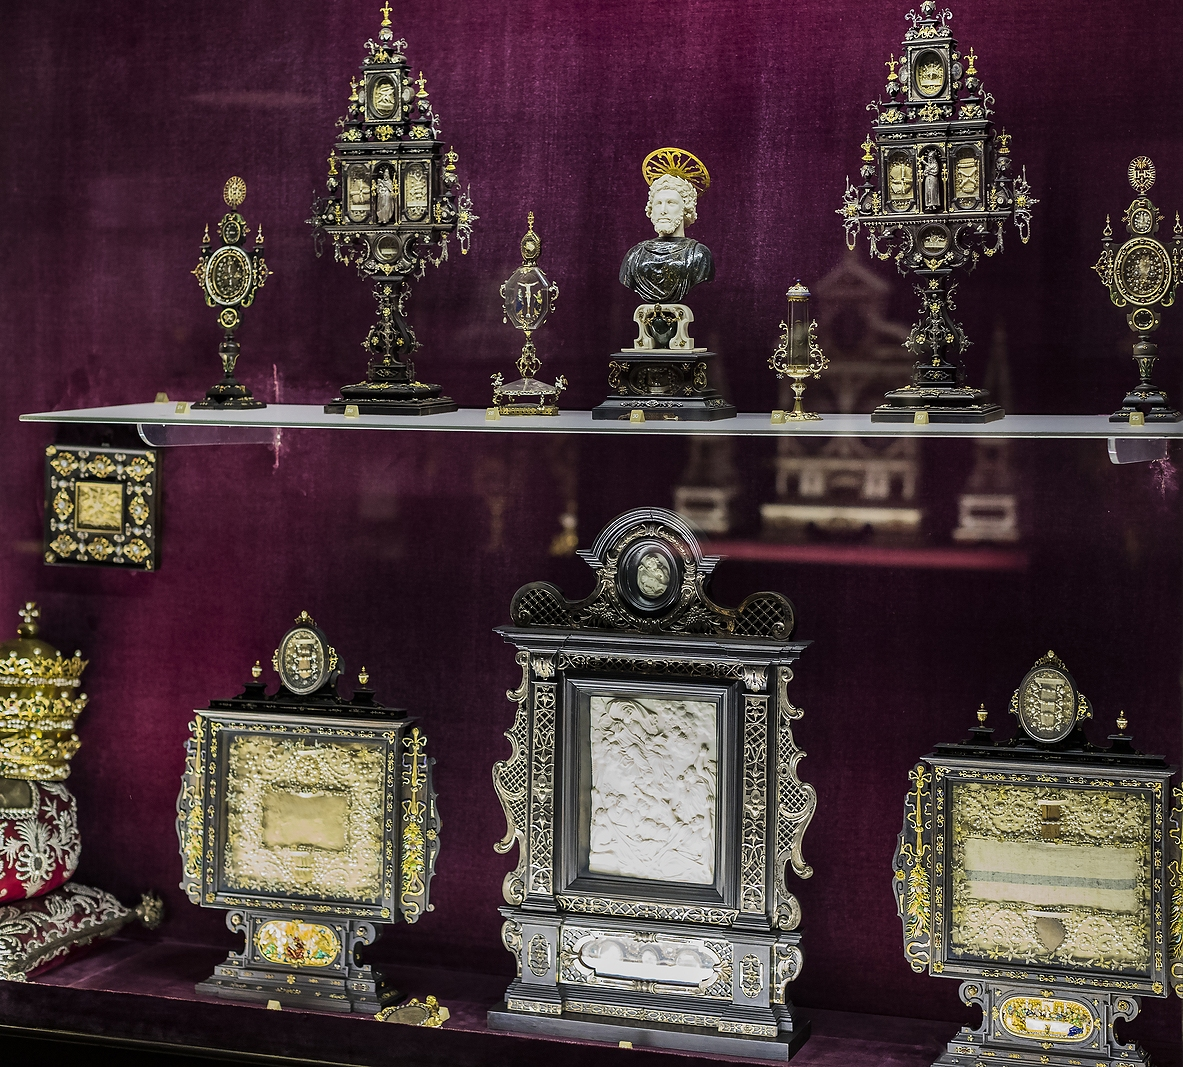 Christian relics for sale